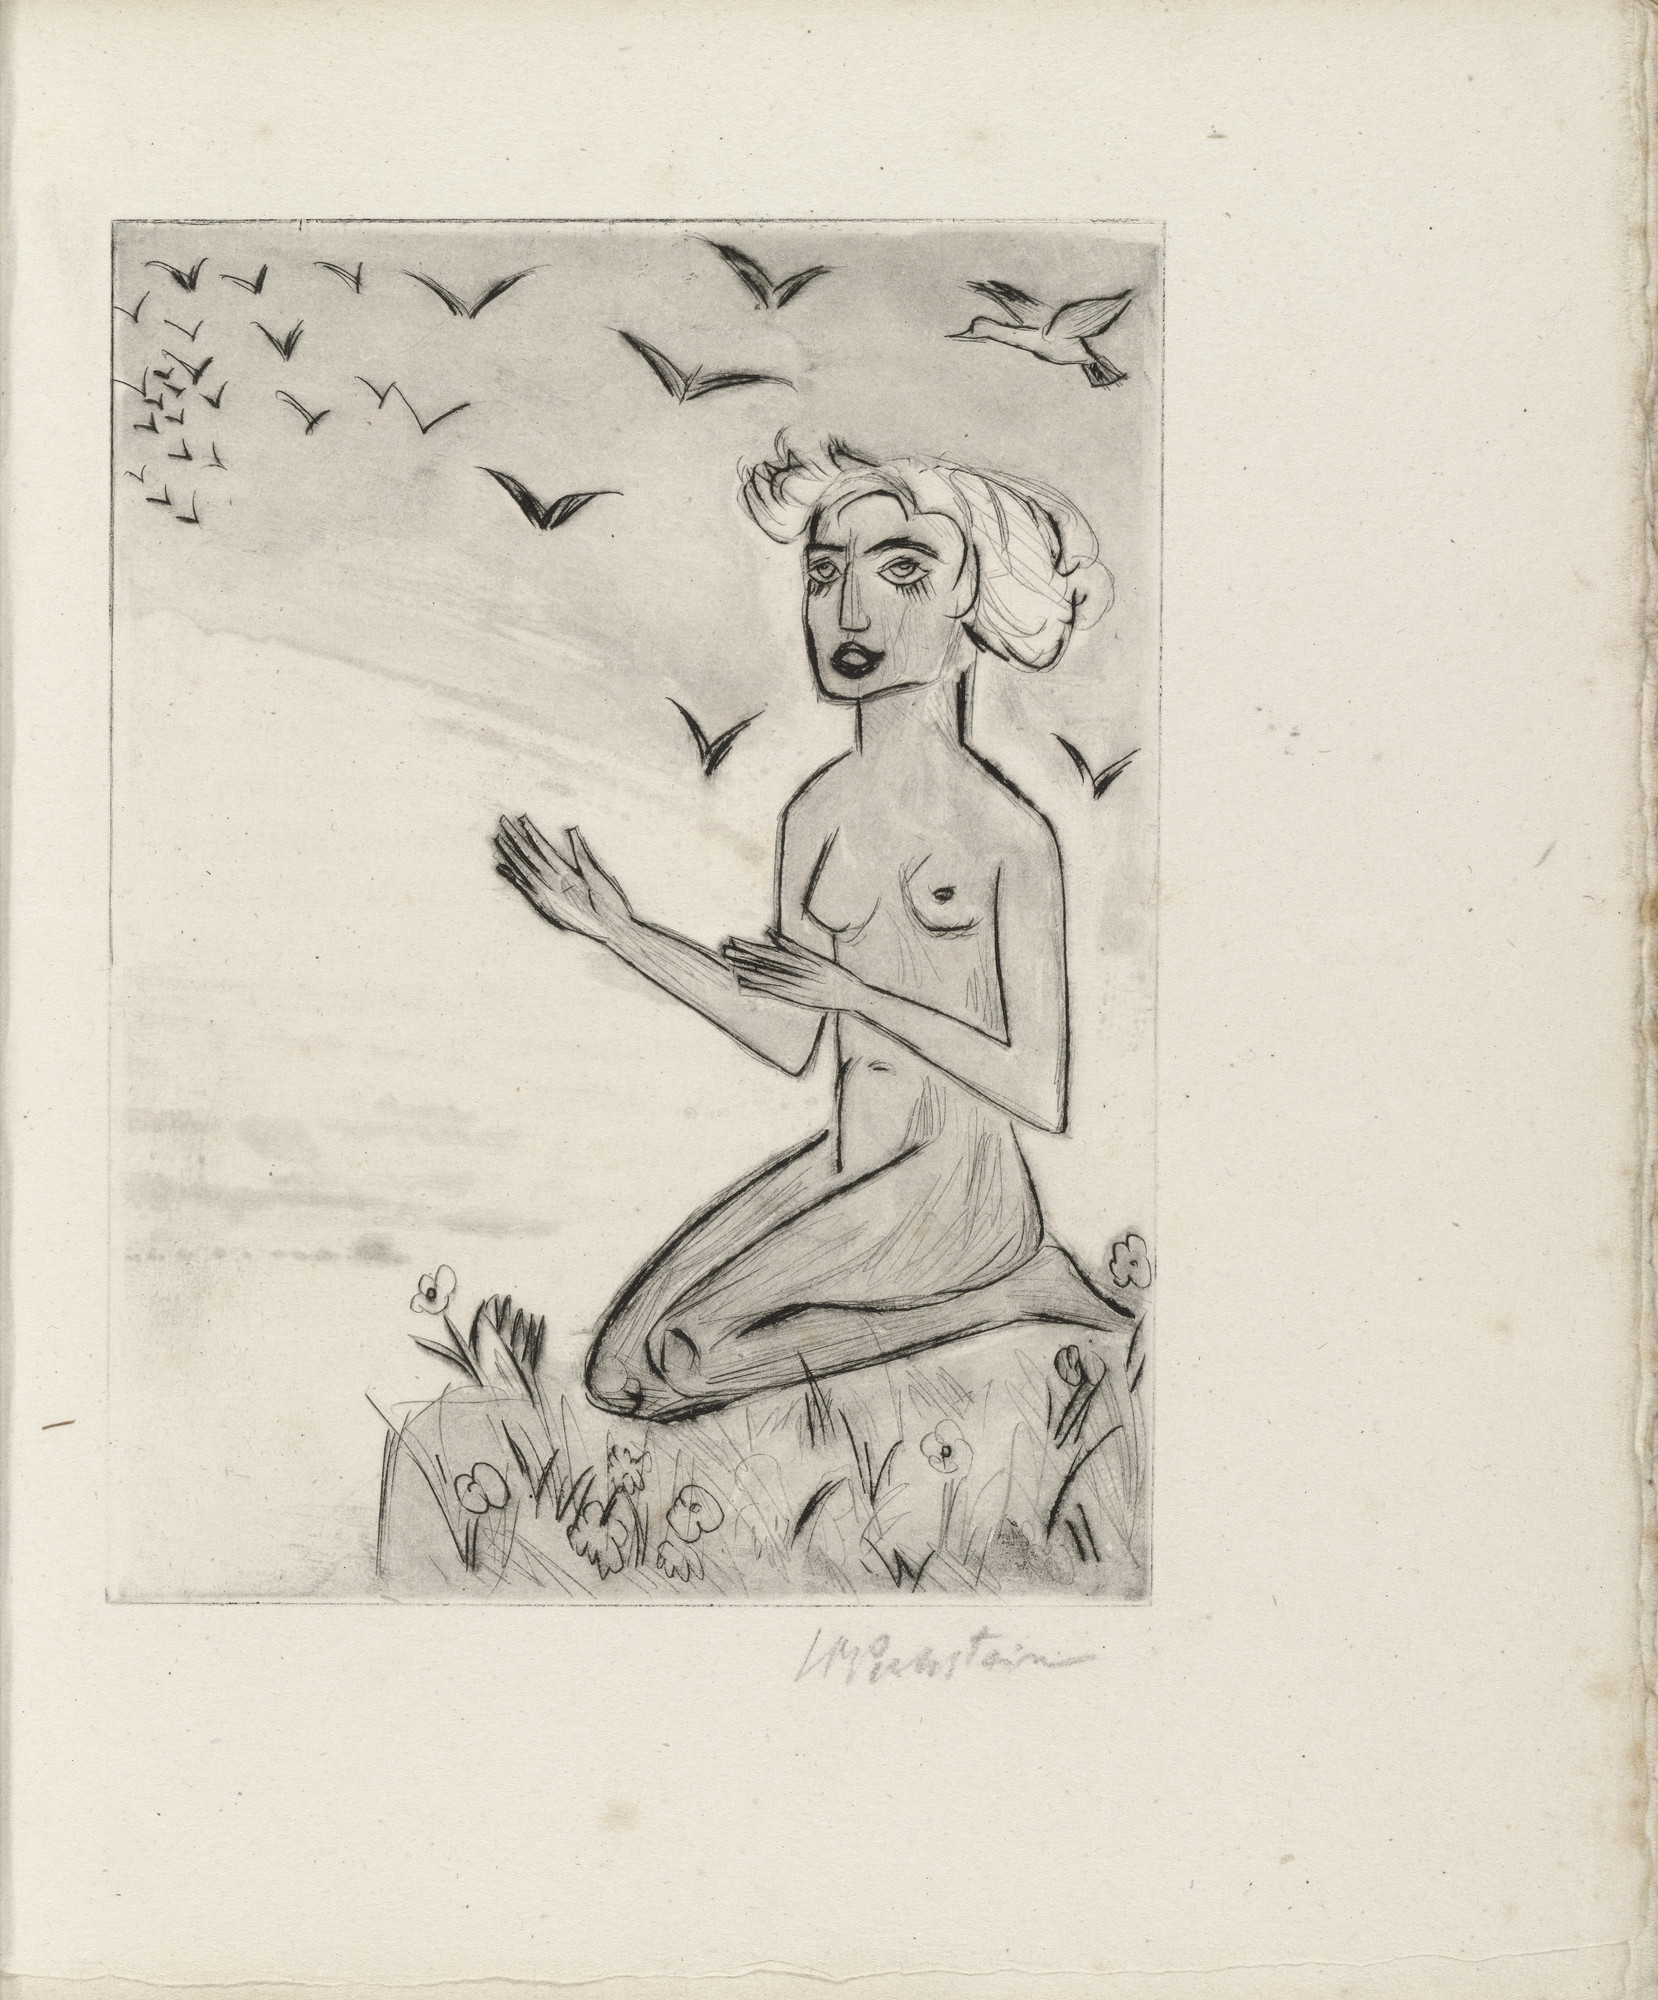 Max Pechstein. Plate (facing page 16) from Yali und sein weisses Weib (Yali and His White Wife). (1923)